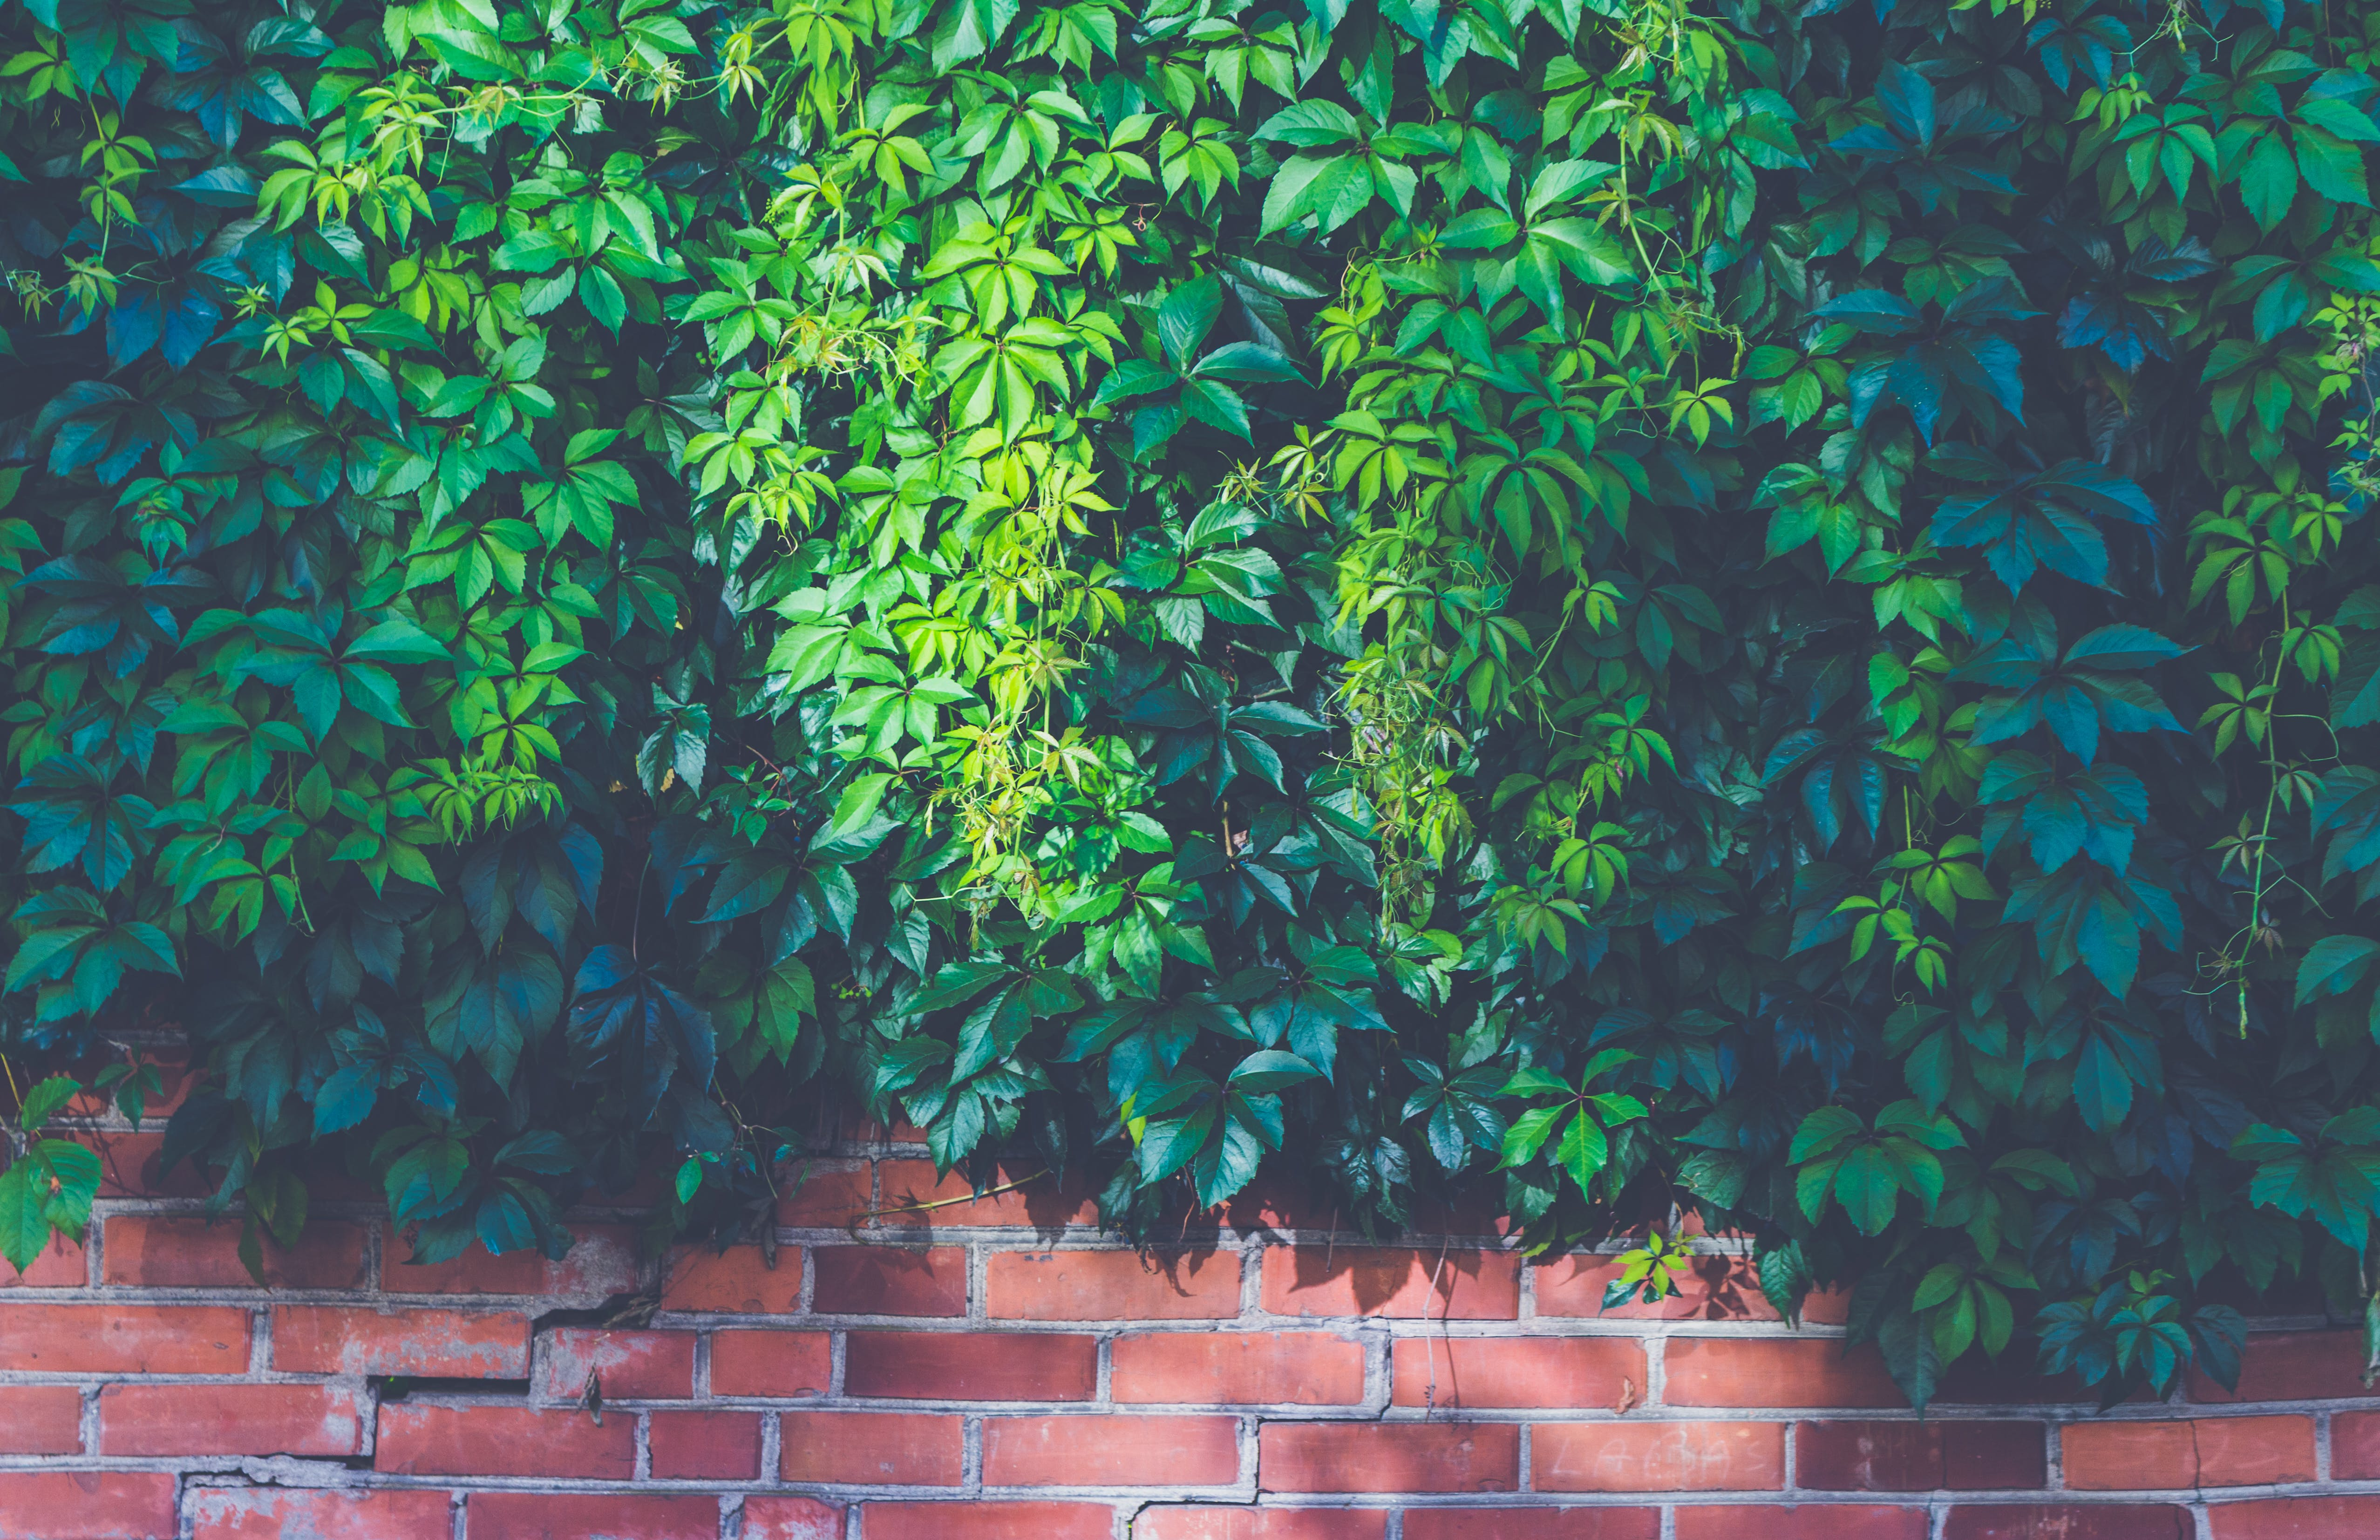 Green Outdoor Plants on Brown Brick Wall